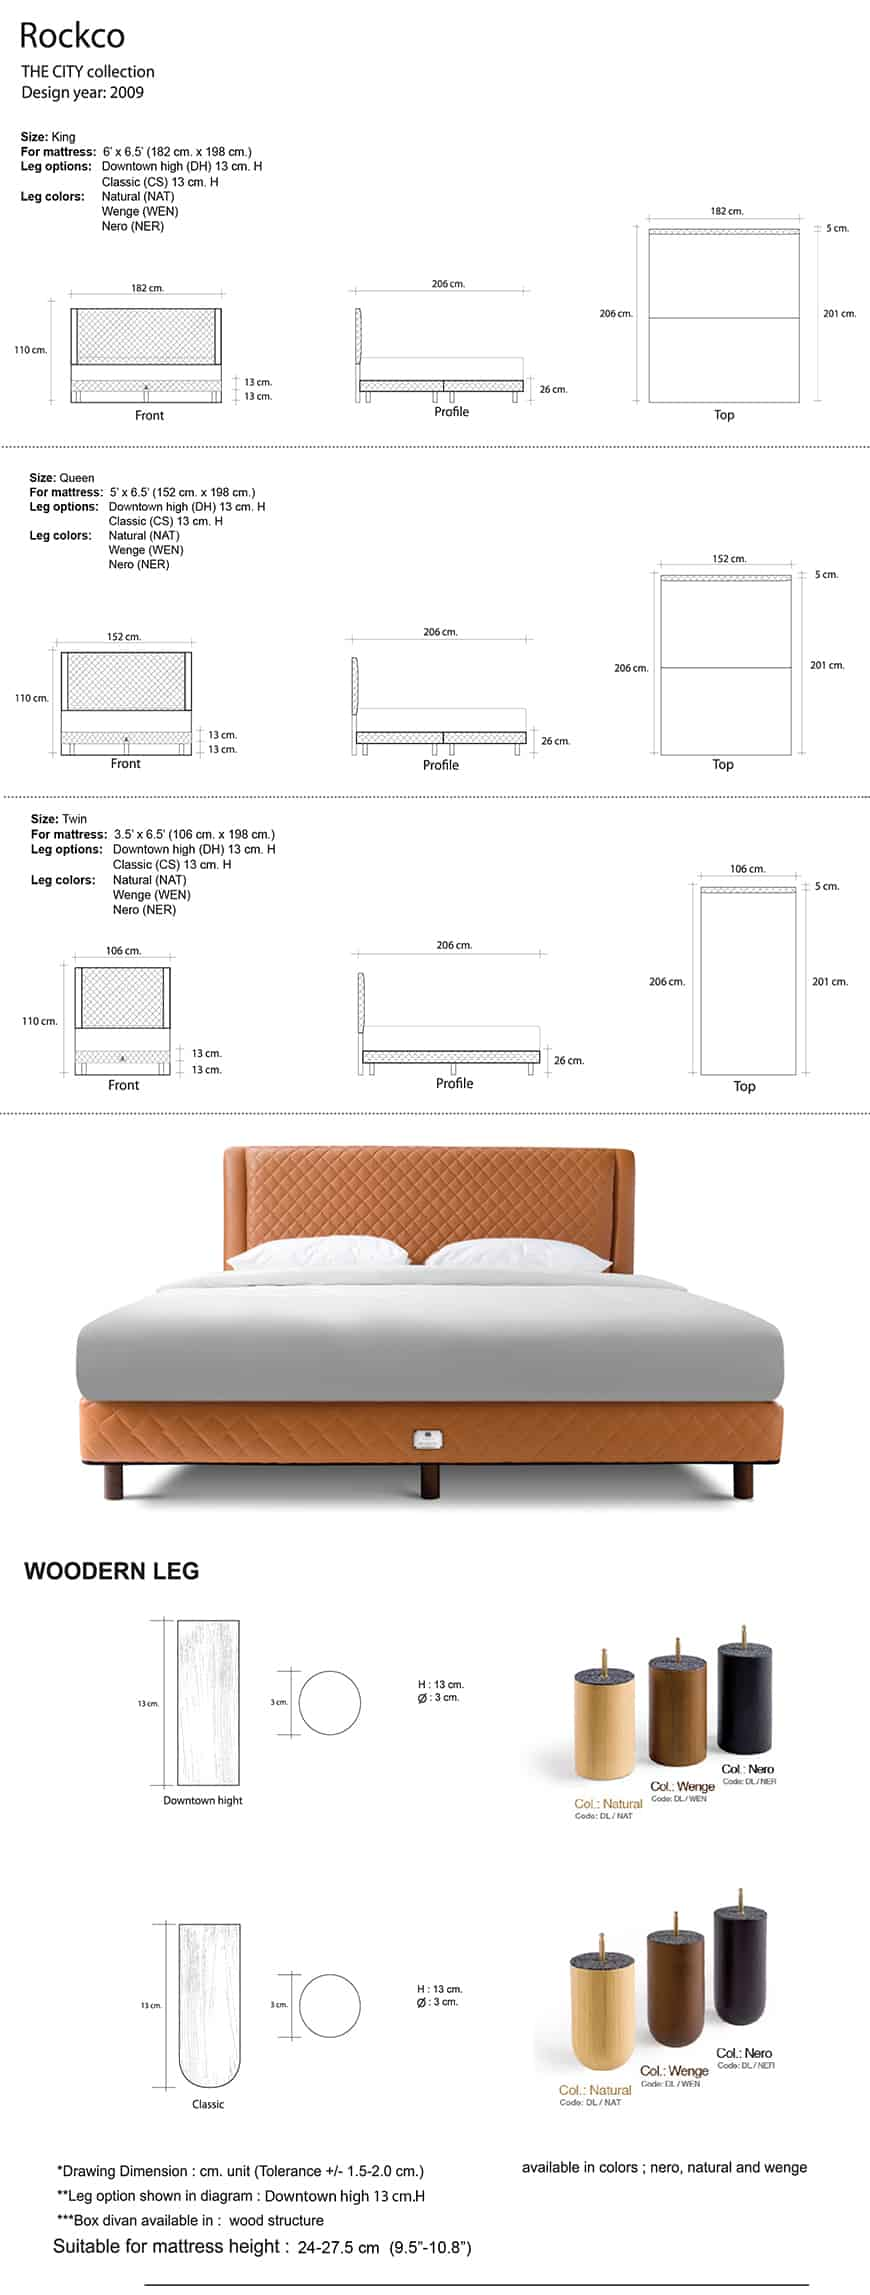 Lotus The City Bed | Collection - Rockco 8